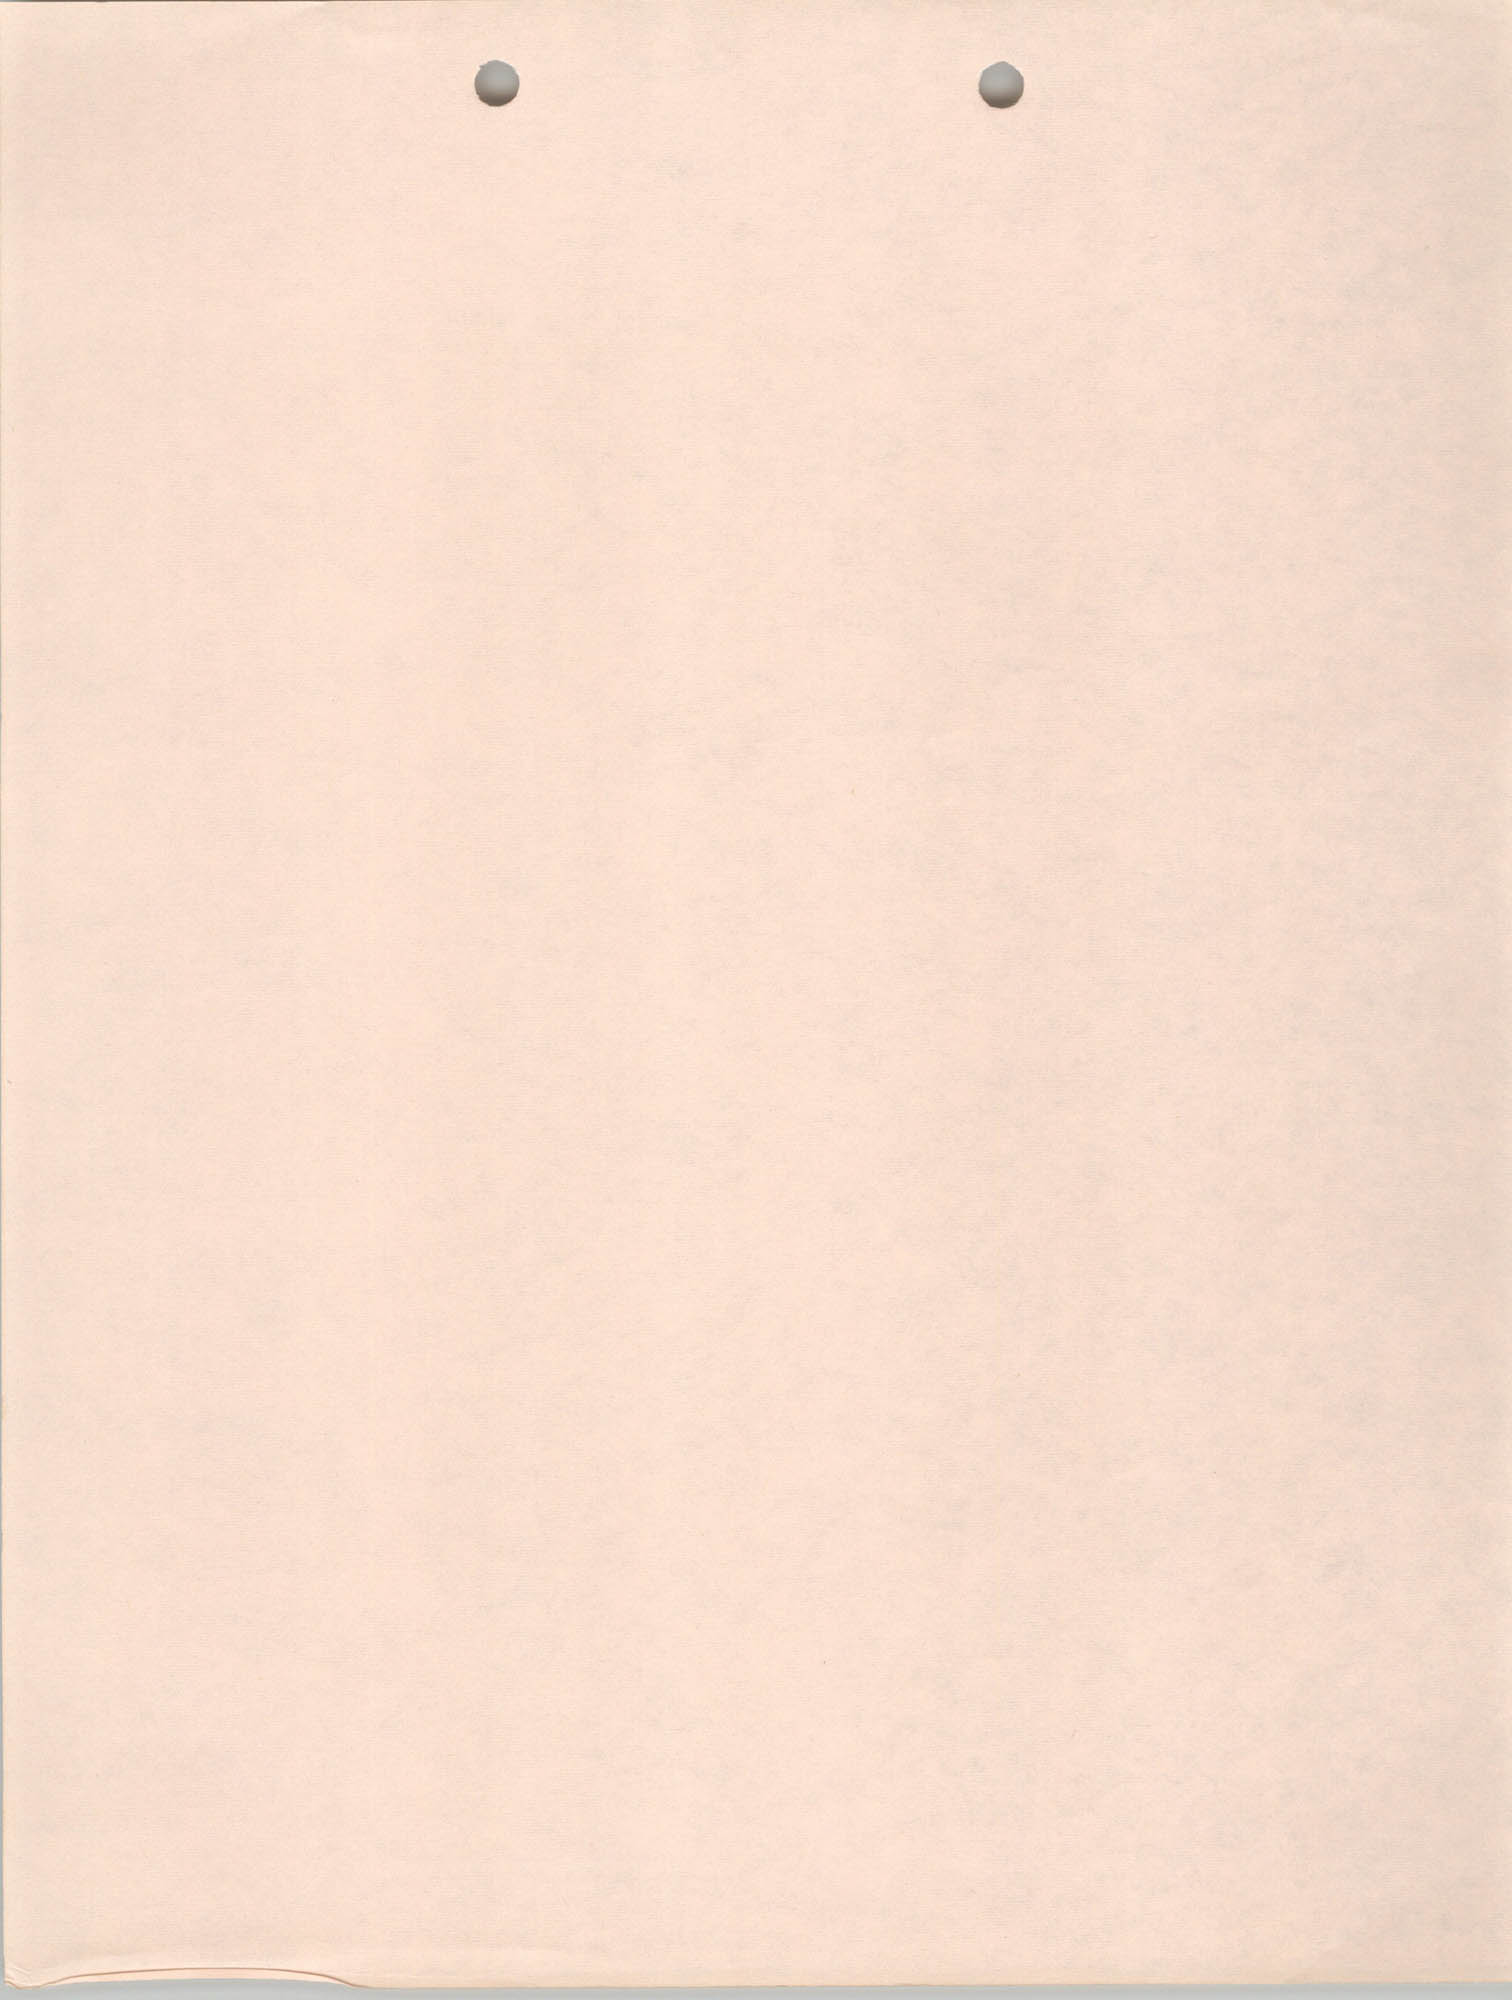 Blank Pink Page